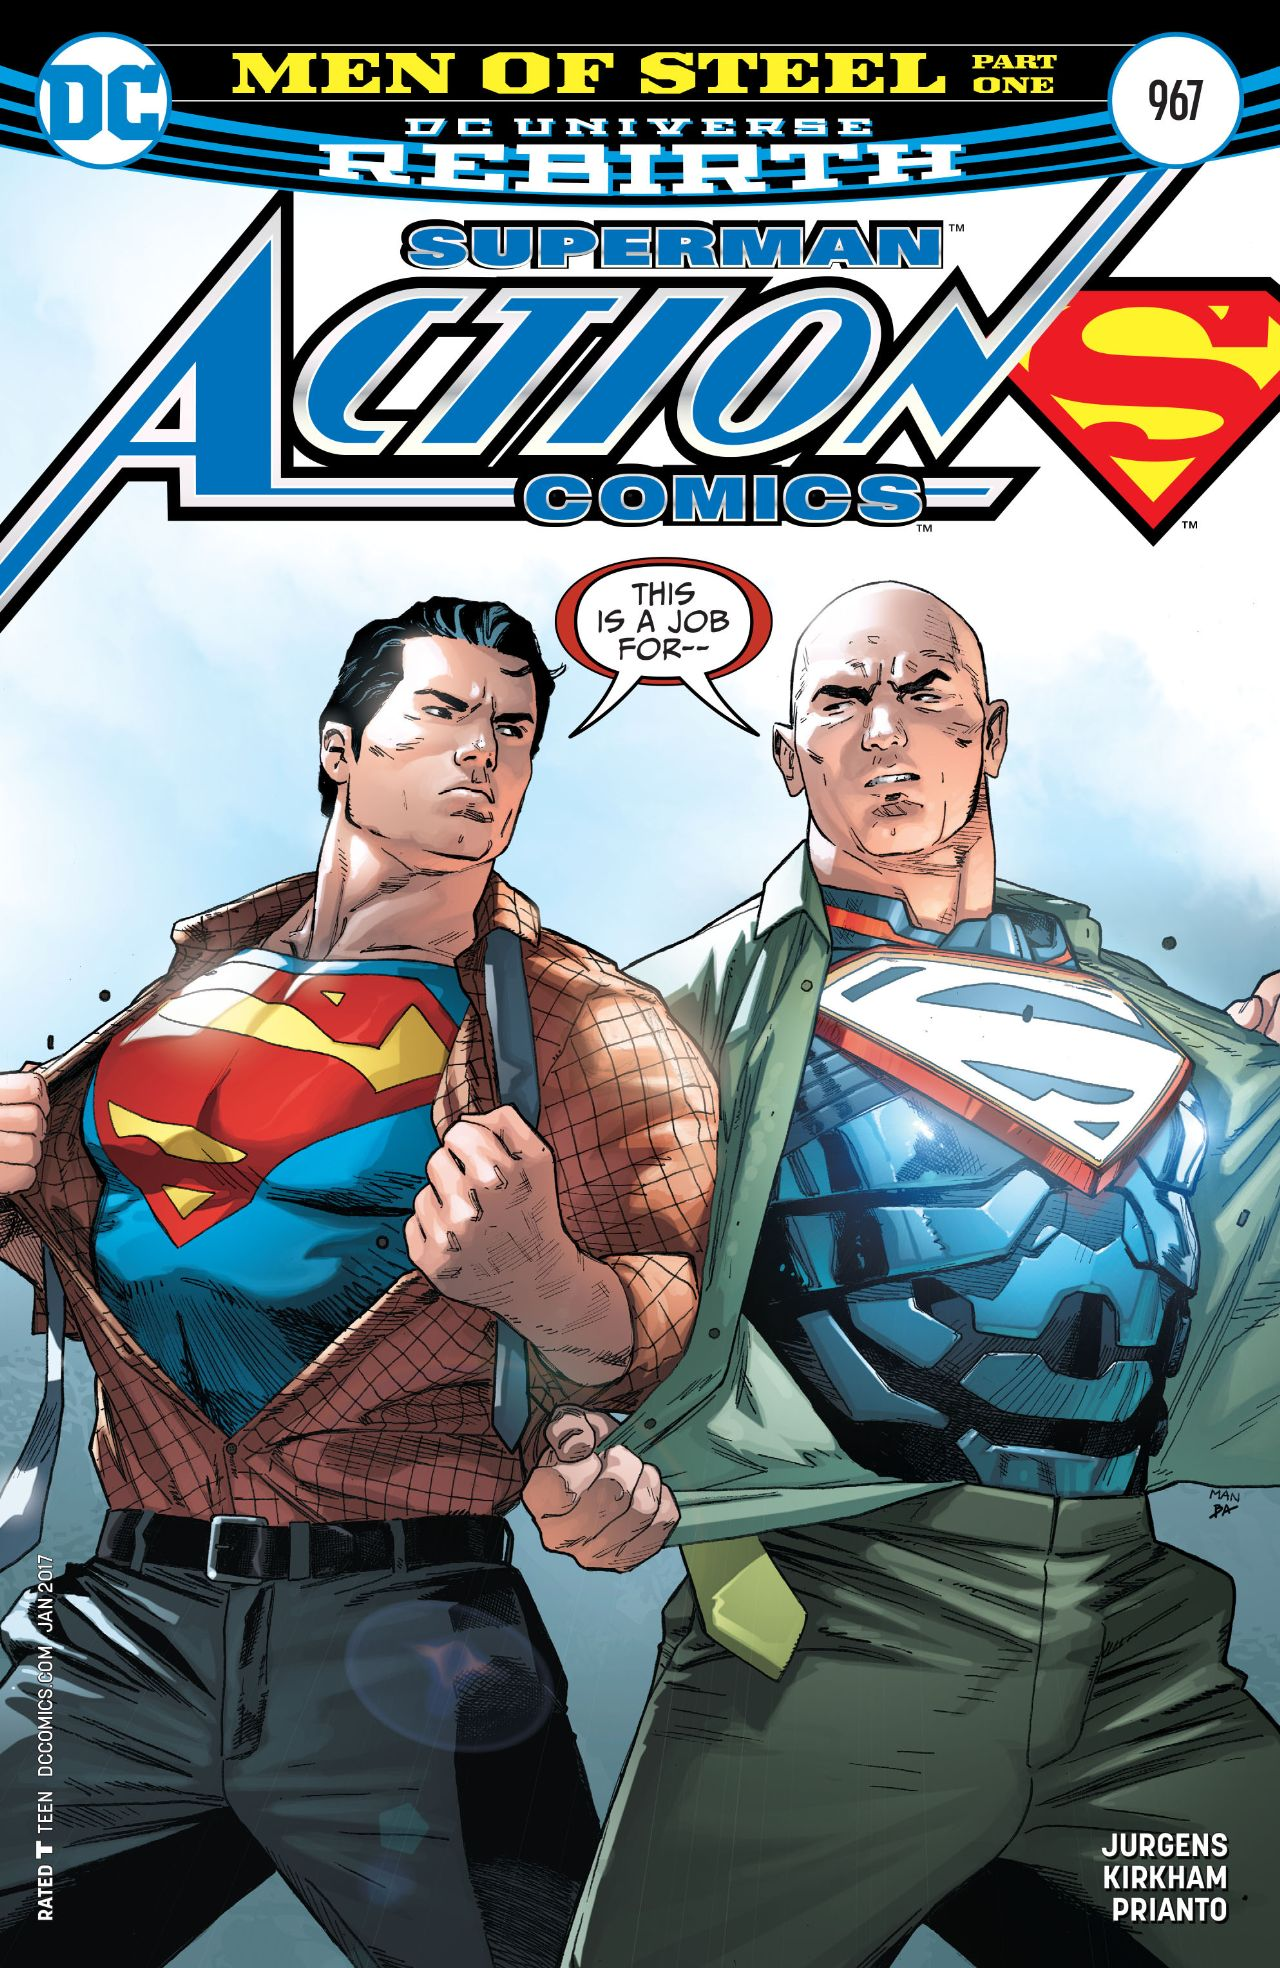 Action Comics Vol 1 967